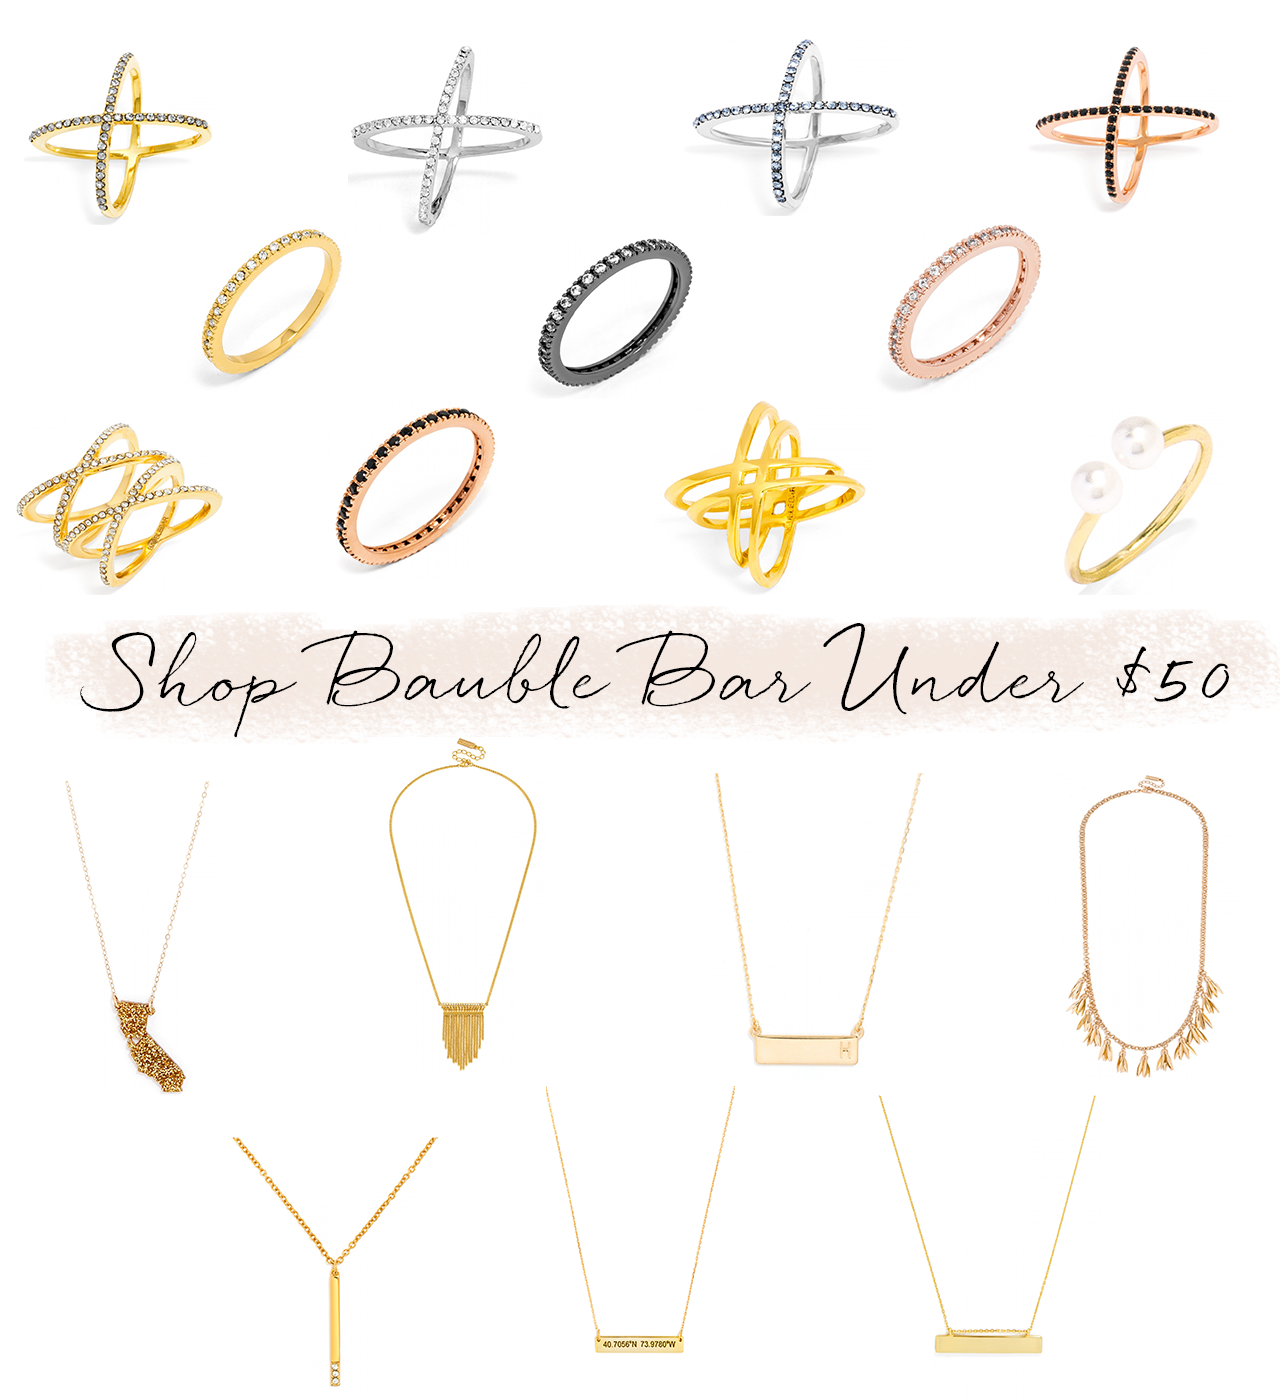 Shop Bauble Bar for under $50 AND get 30% off! Details at StyledByBlondie.com